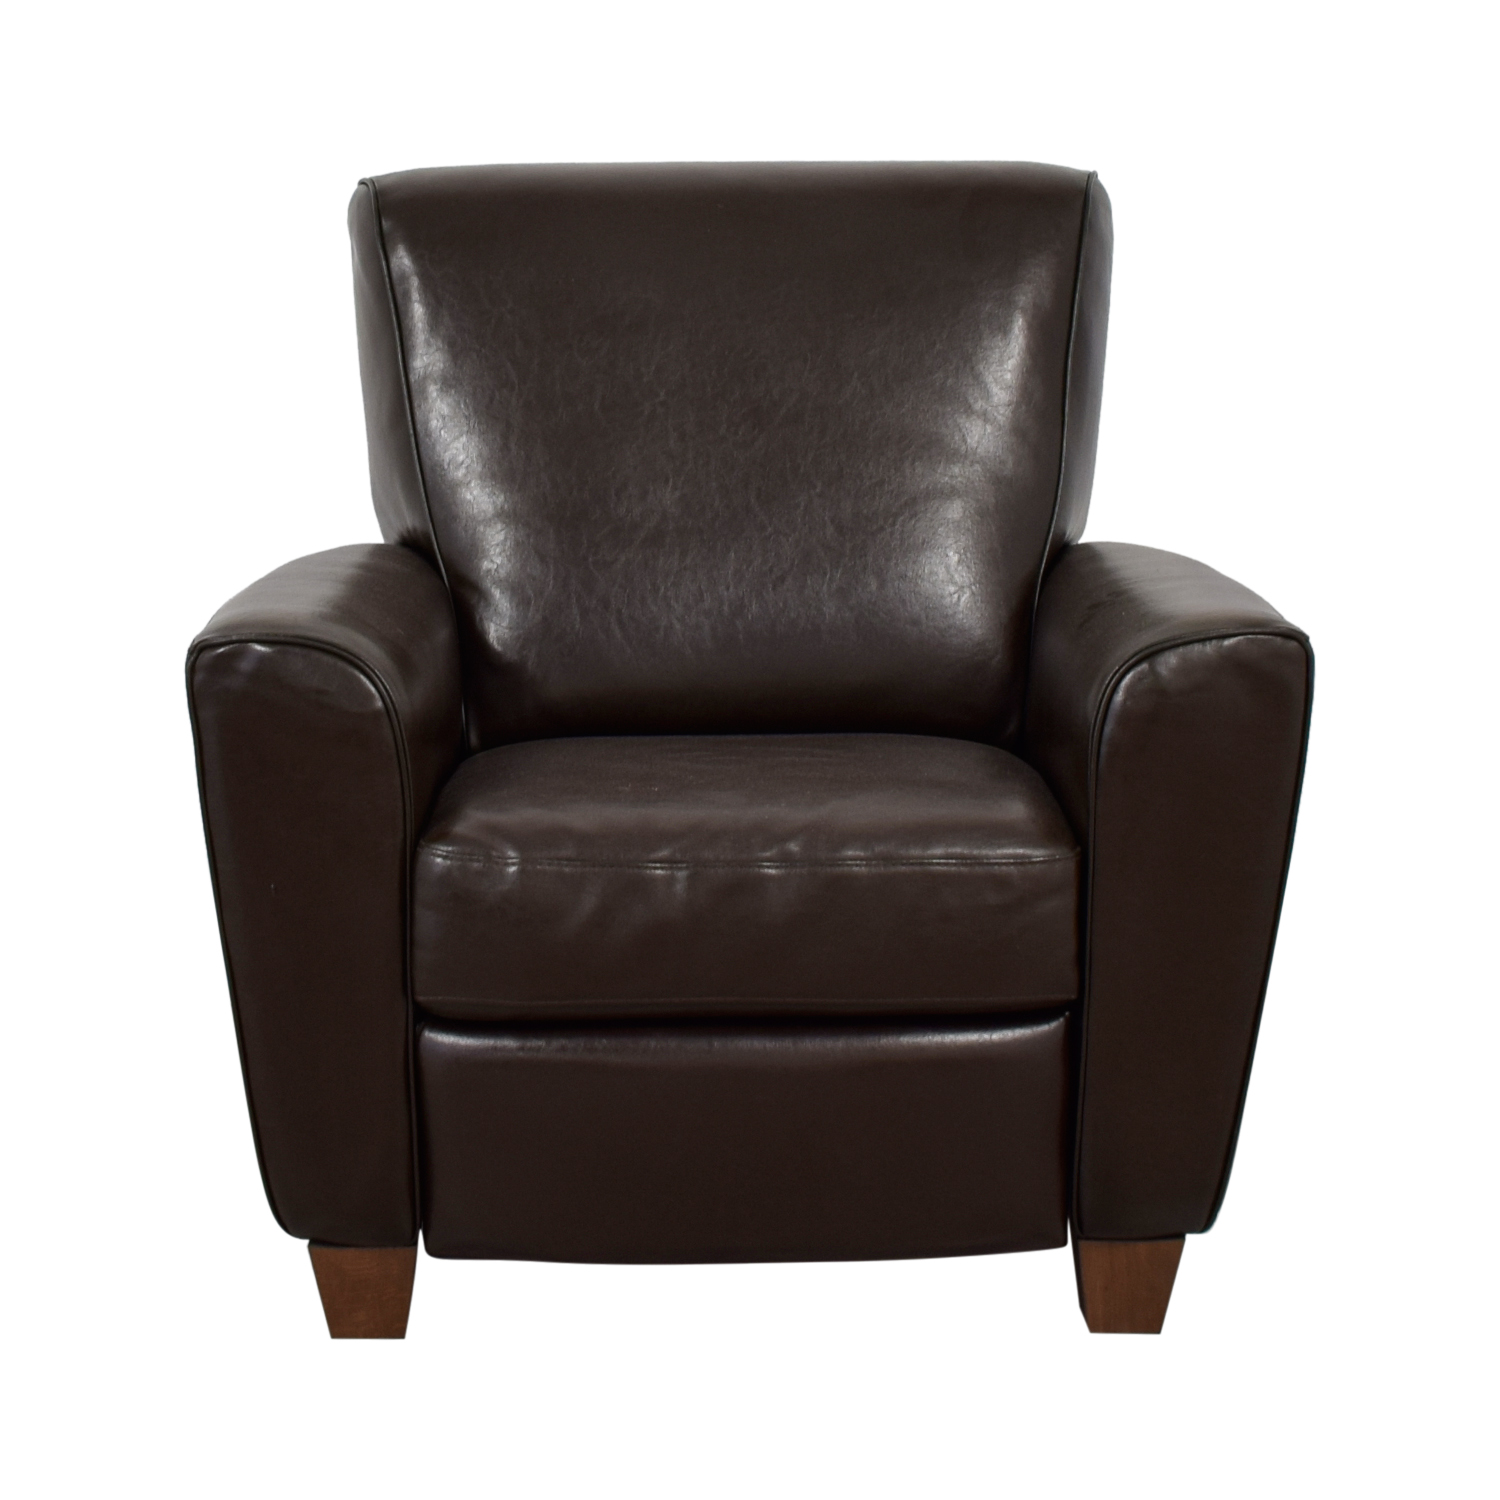 natuzzi lounge chair deer antler rocking 79 off brown leather recliner chairs